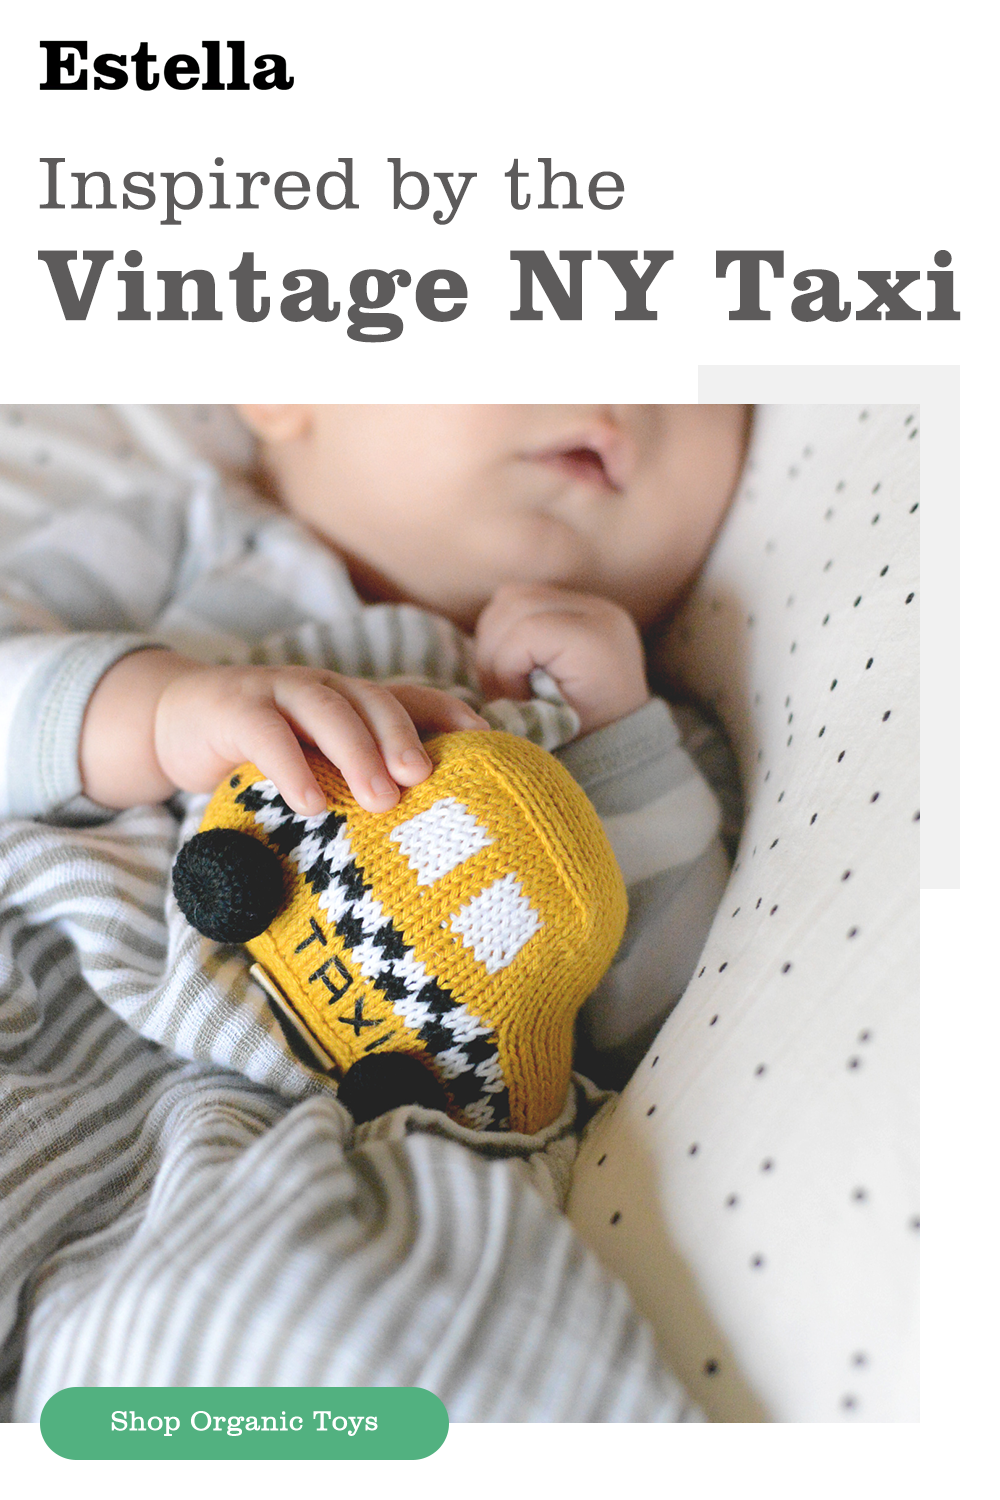 Baby Toy Rattle Taxi Car, orgánico y hecho a mano